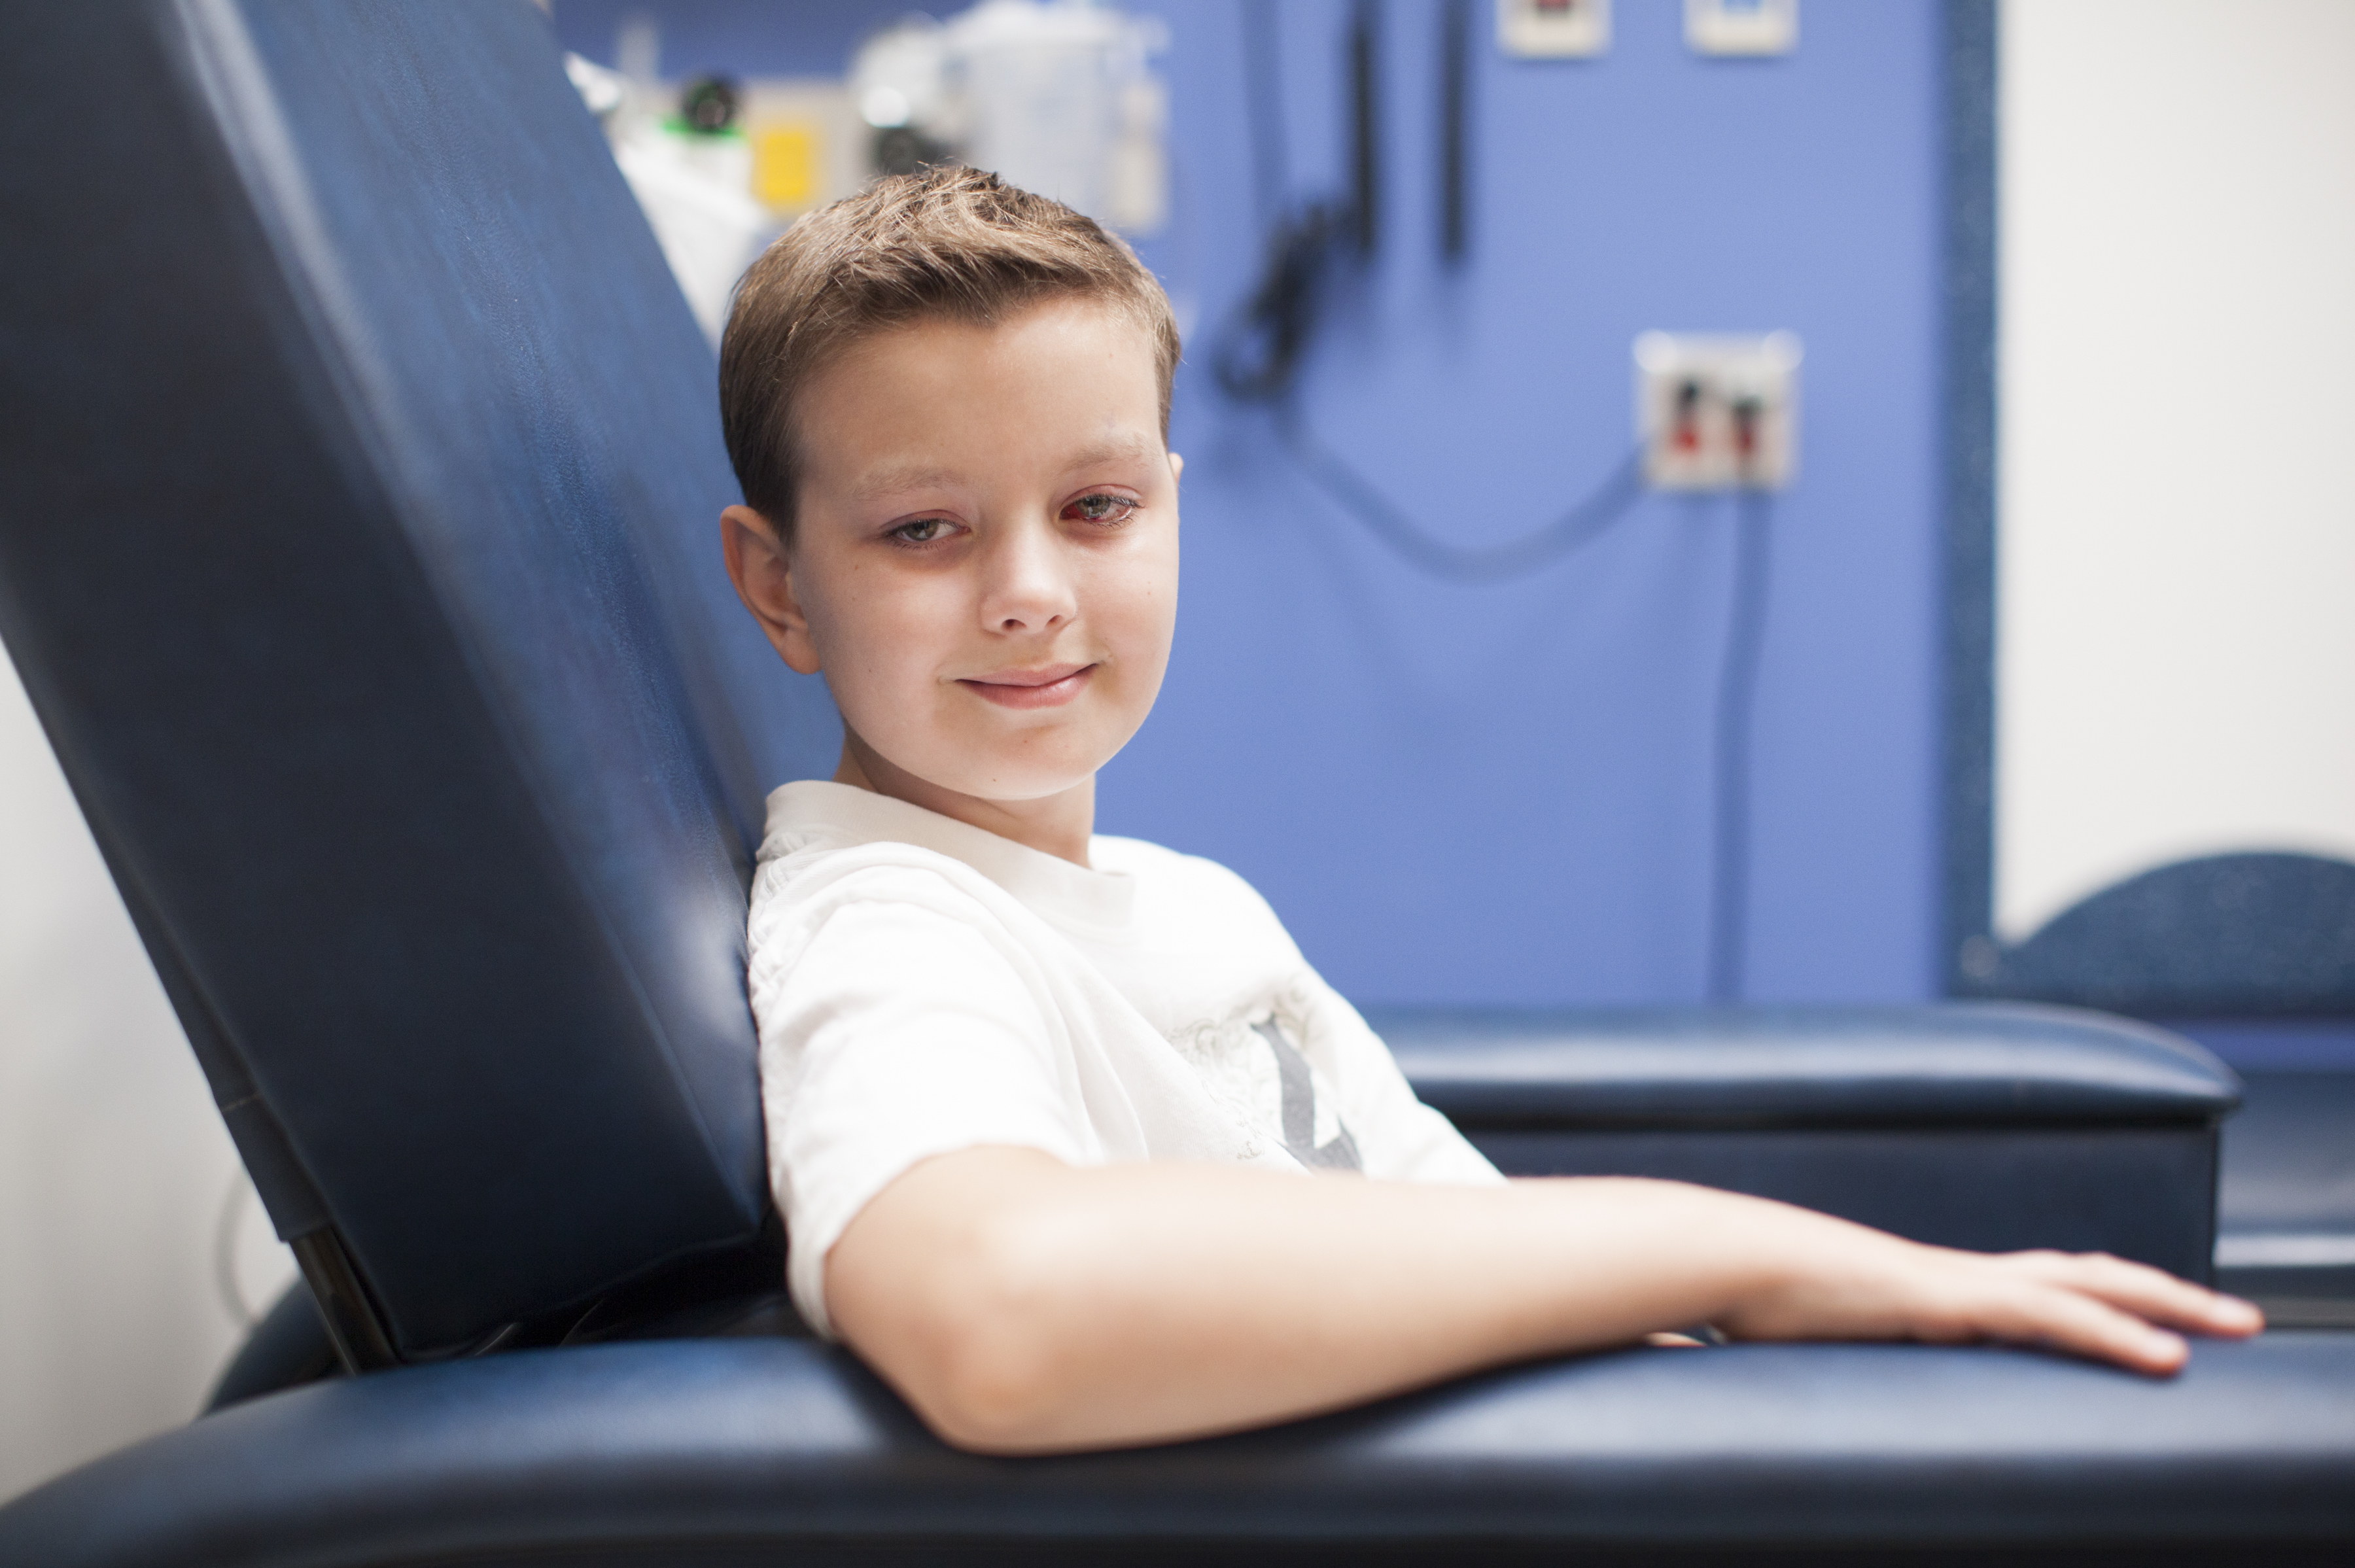 Treating Kids' Cancer With Science And A Pocket Full Of Hope